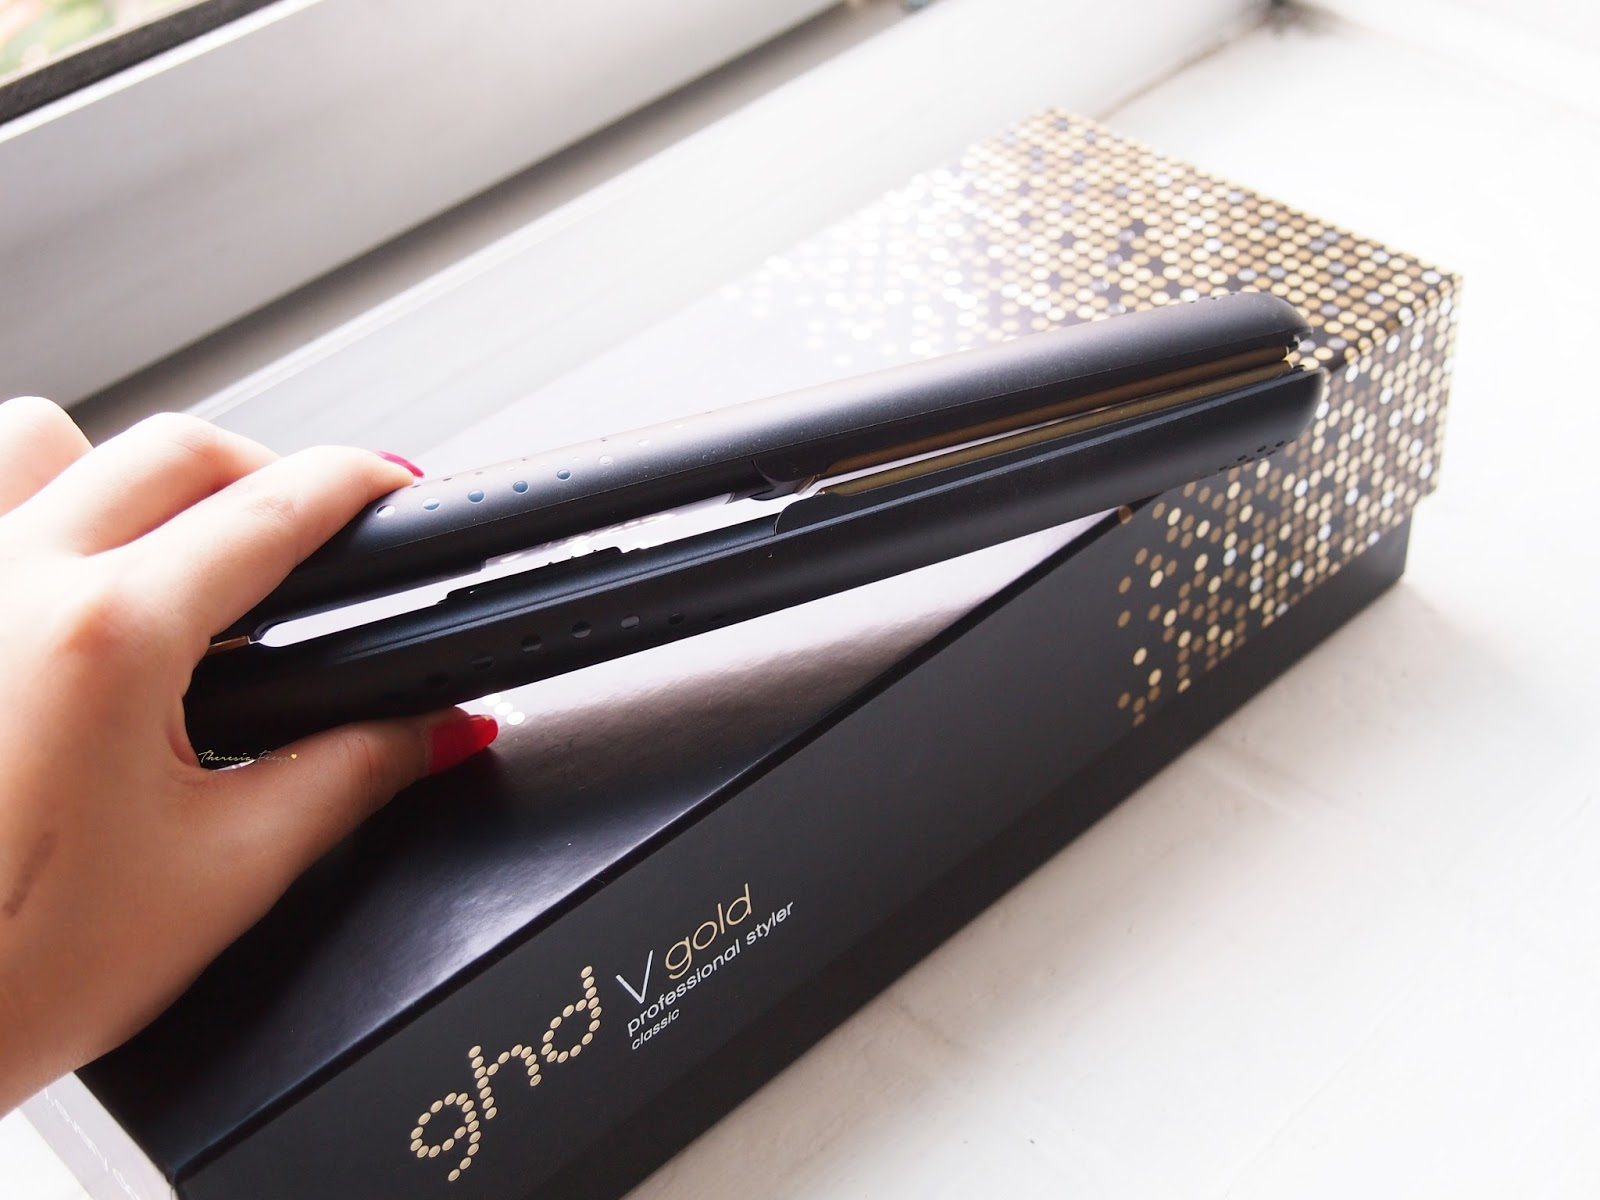 ghd v gold classic series hair styler is the best hair styling tools ...